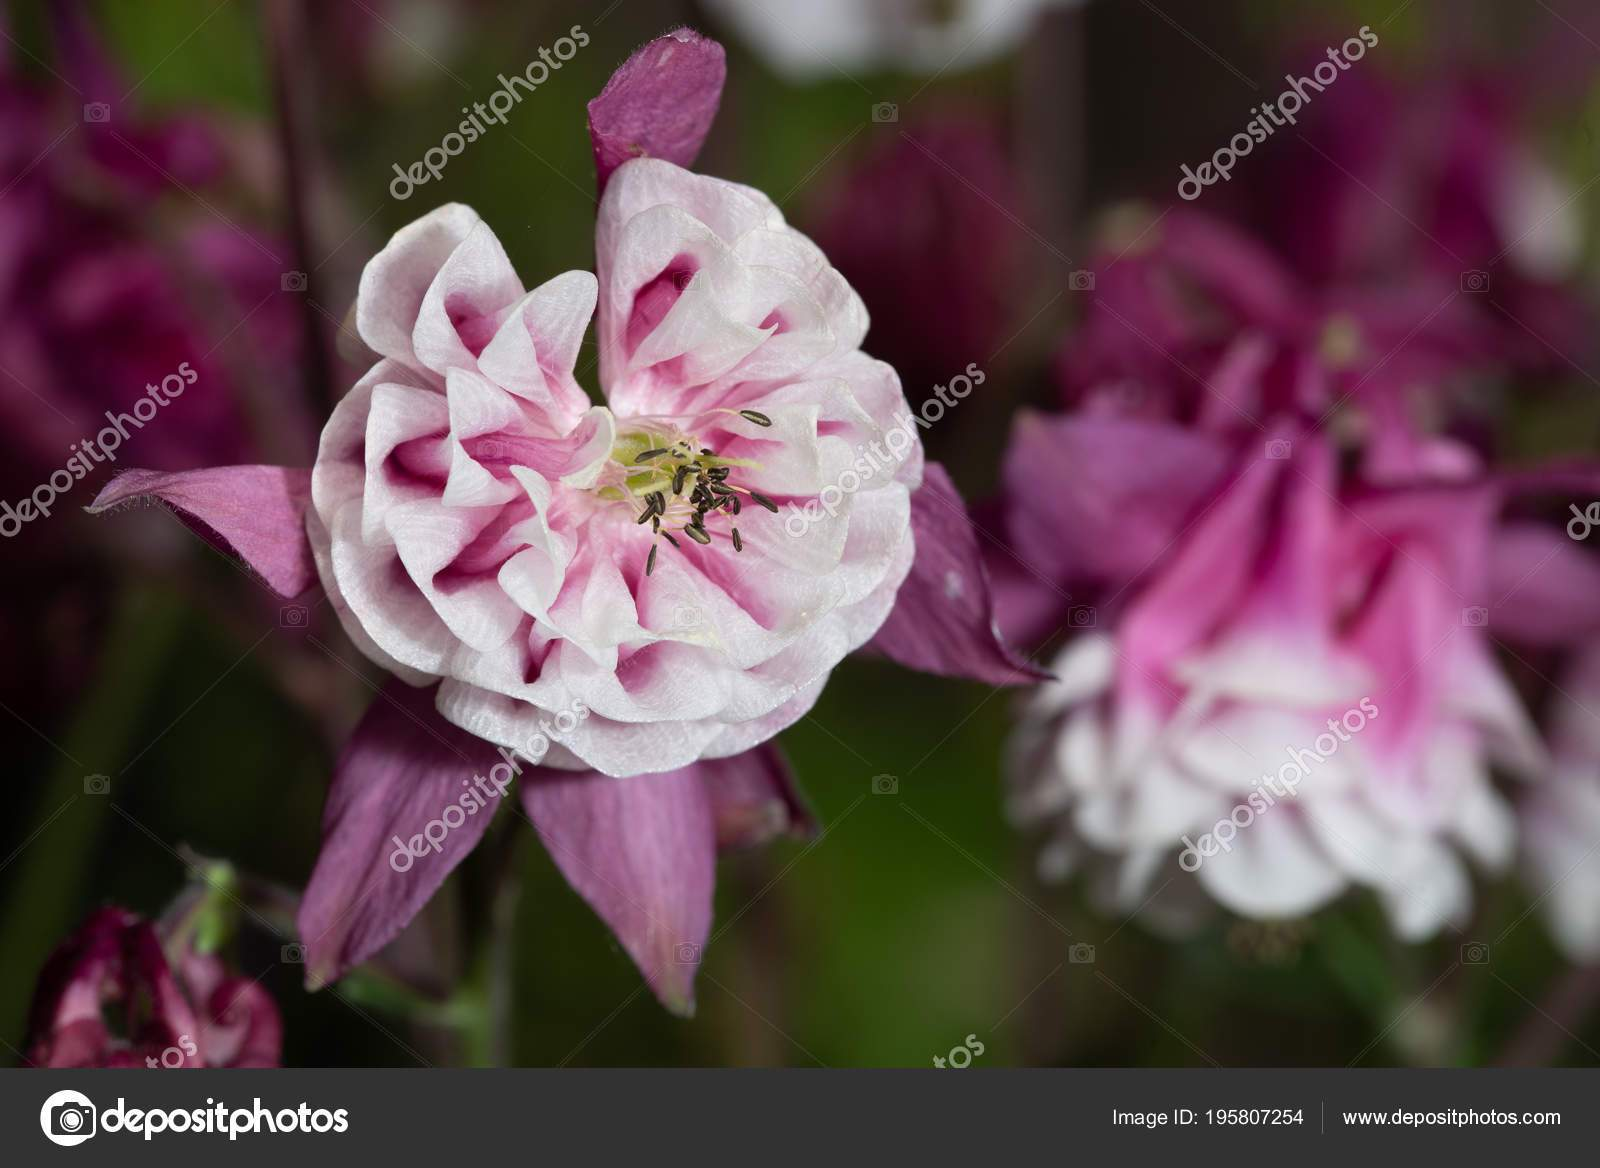 depositphotos stock photo purple aquilegia flower natural background